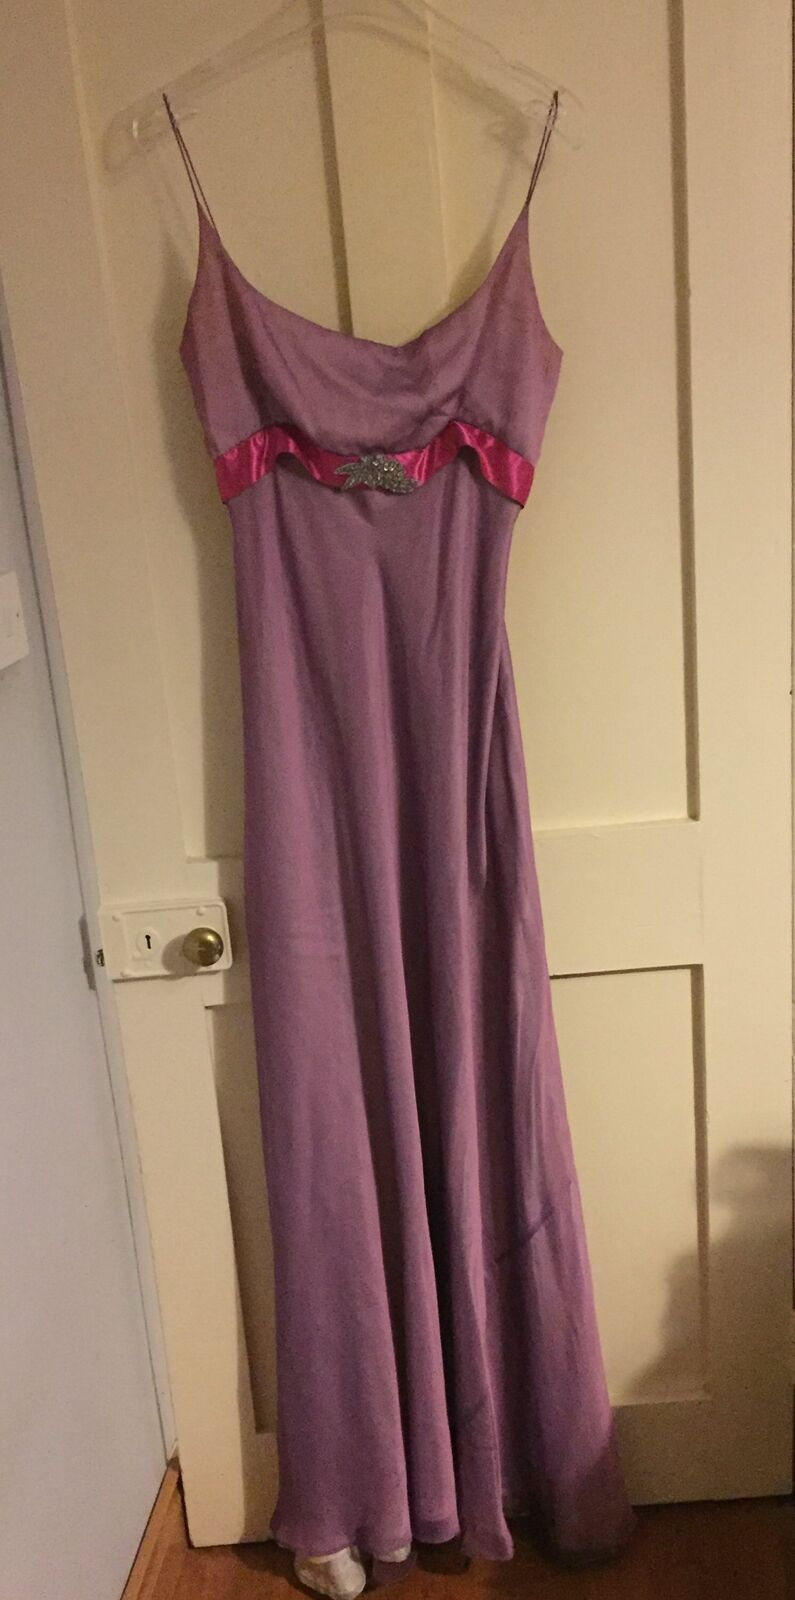 purplec & pink full length empire gown size 14 (small fit)